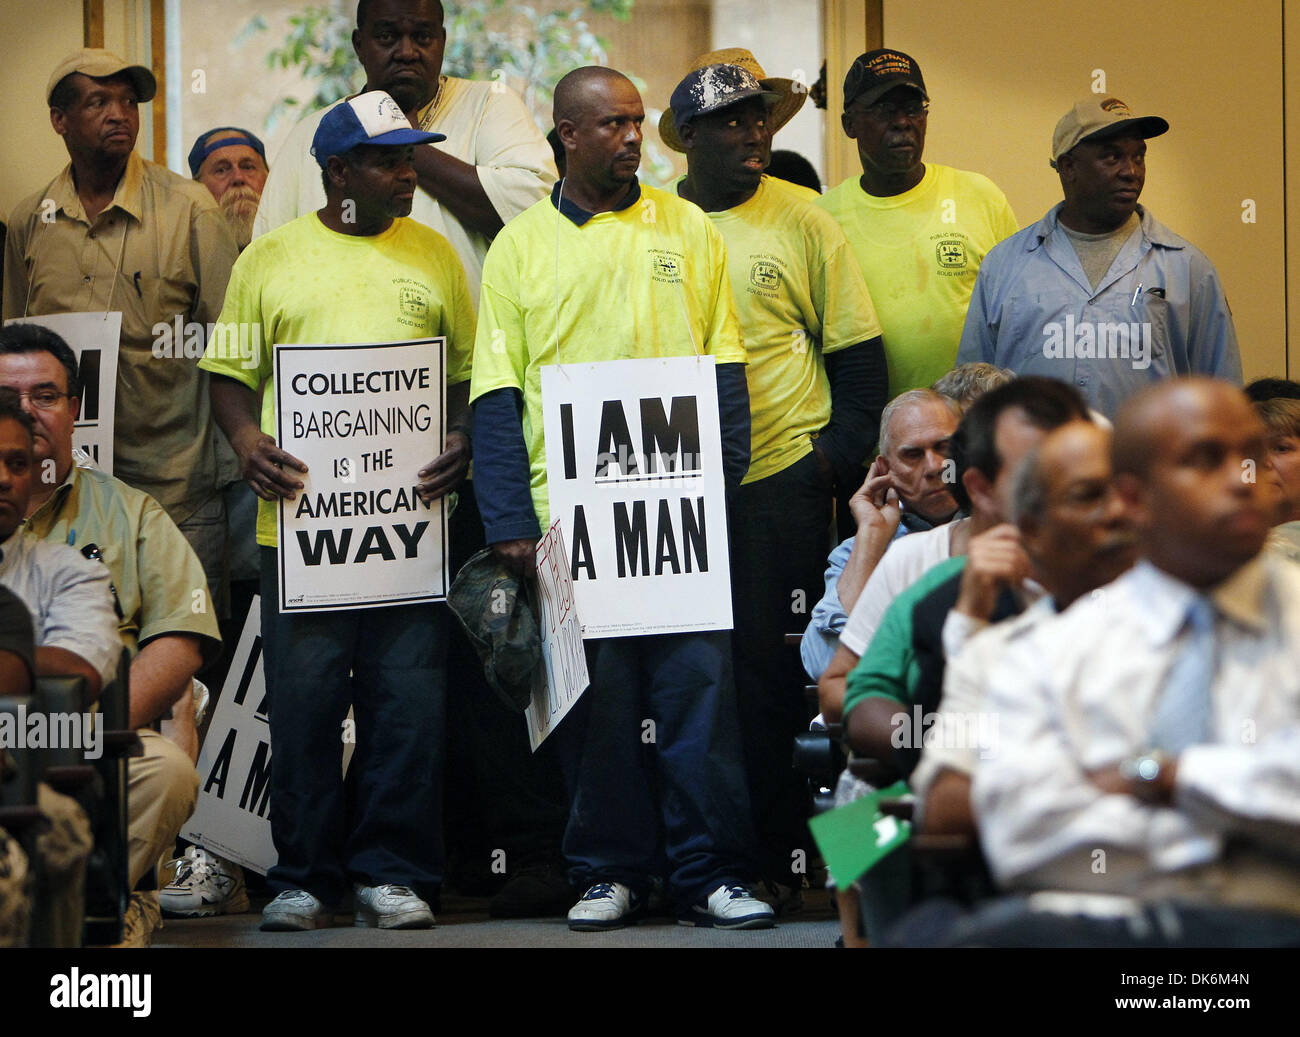 June 7, 2011 - Memphis, TN, U.S. - June 7, 2011 – Wearing I Am Man posters city sanitation workers protest a proposal that Memphis garbage pickup be privatized a during city council meeting Tuesday afternoon. Mayor A C Wharton said Tuesday he did not support a proposal from council member Kemp Conrad to outsource all garbage collection efforts but said he would work with the coun - Stock Image